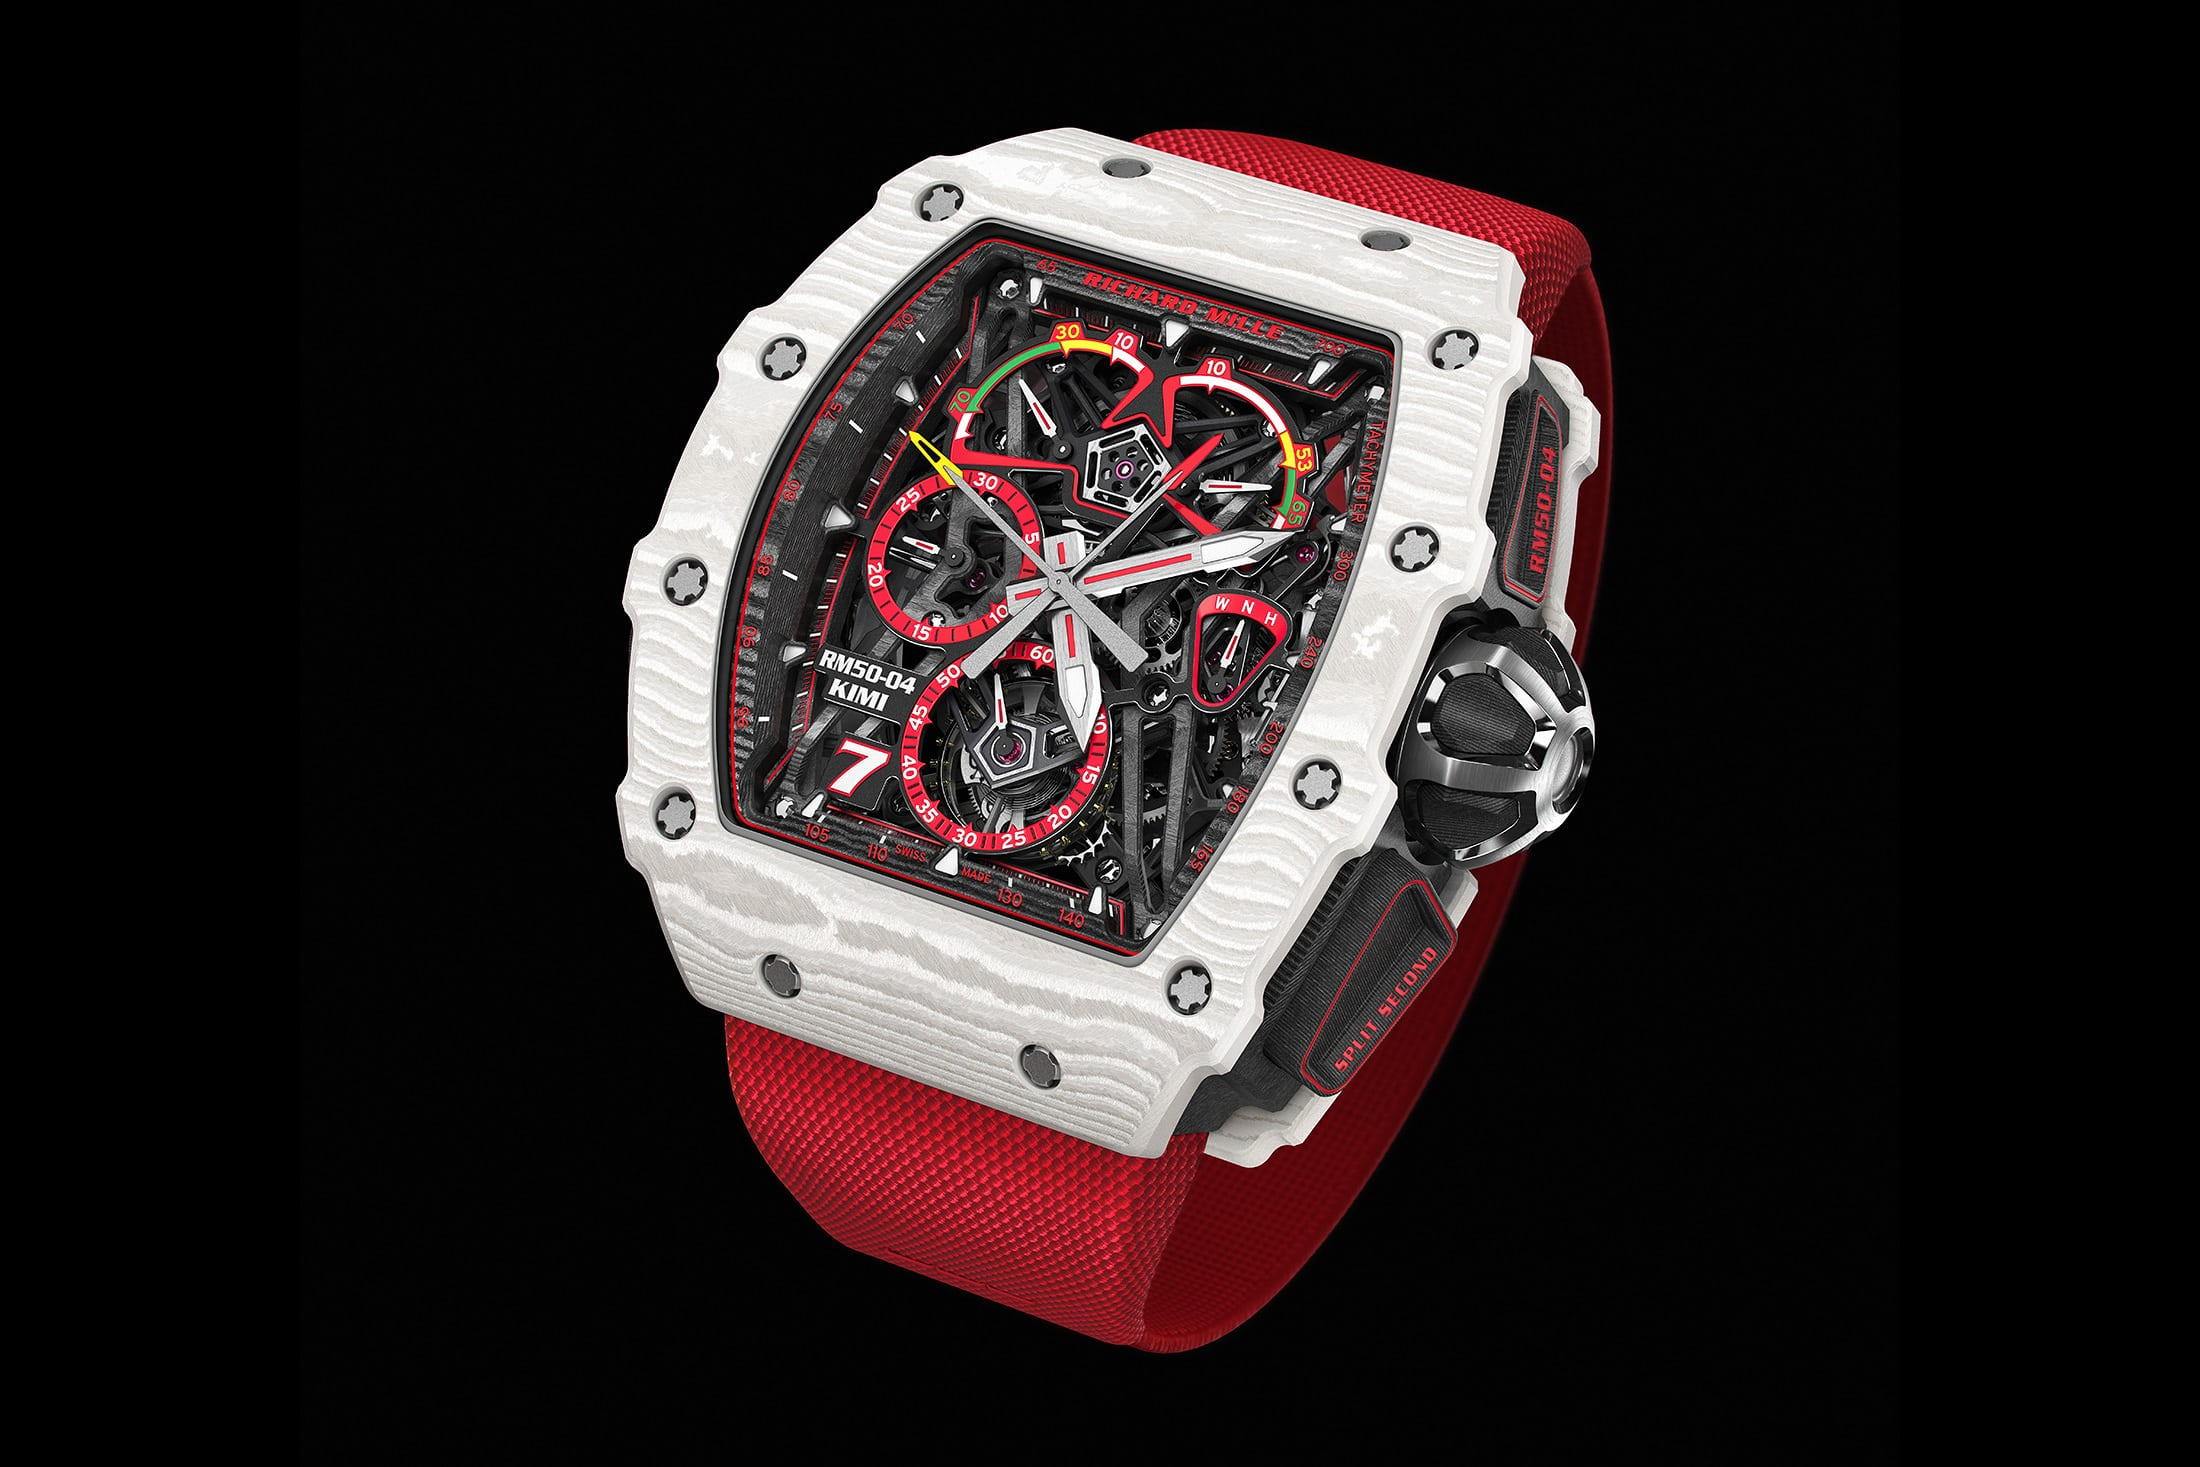 Richard-Mille-RM-50-04-Tourbillon-Split-Seconds-Chronograph-Kimi-Raikkonen-Limited-Edition-1